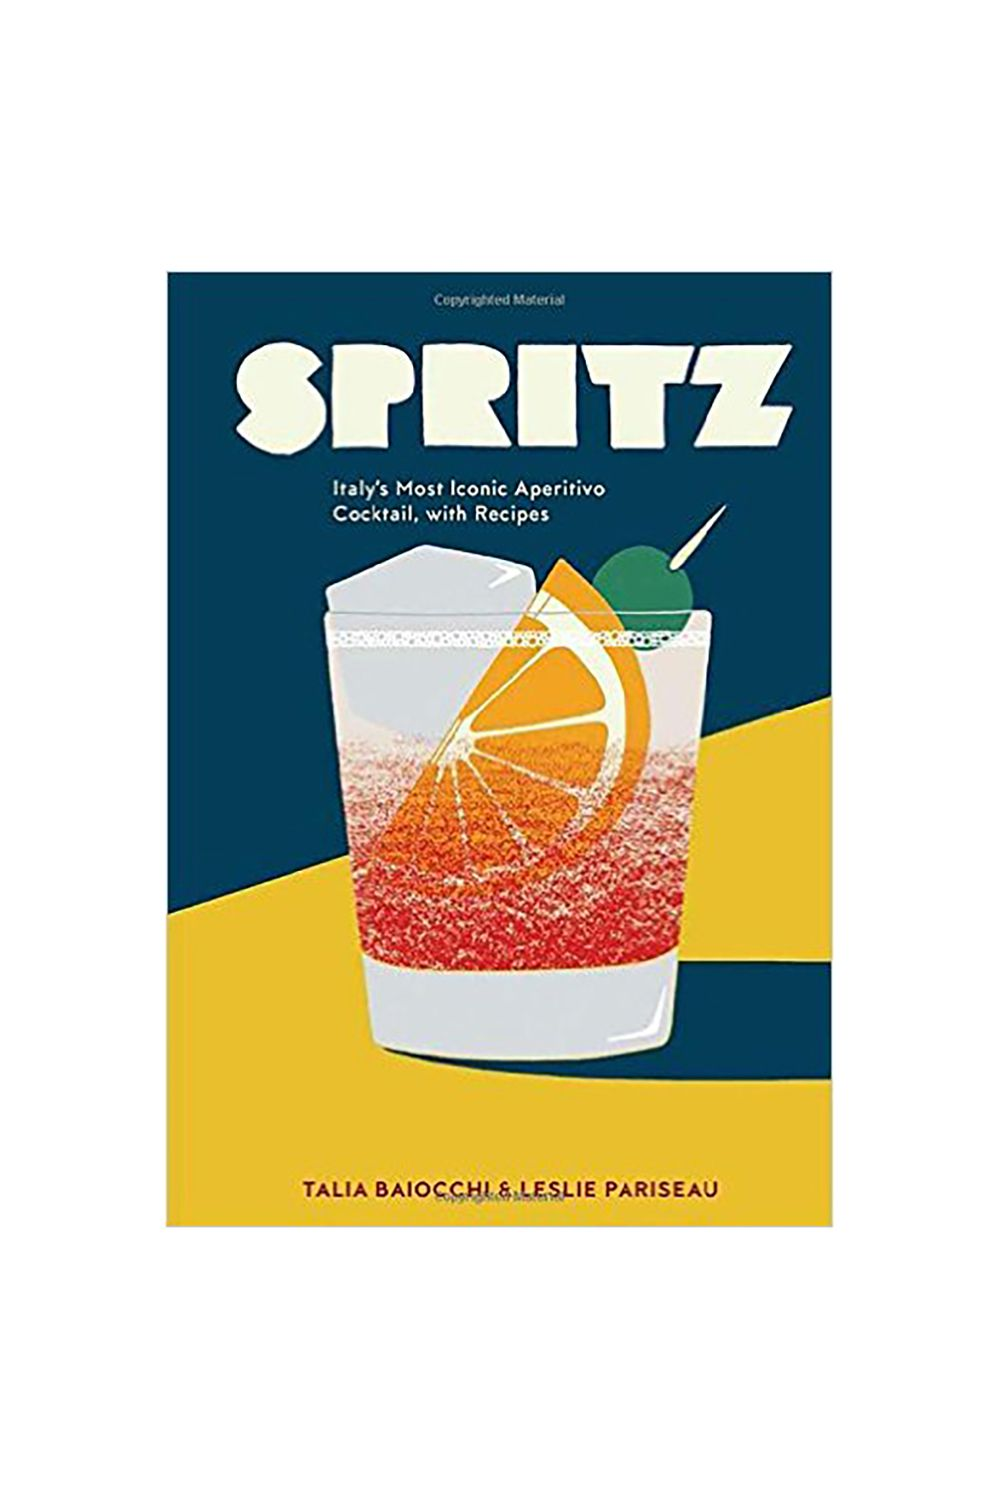 "<p>You'll want to own this new eye-catching cocktail book for multiple reasons: the narrative-driven book traces the origins of&nbsp&#x3B;the spritz cocktail, it contains several mouth-watering cocktail recipes, and&nbsp&#x3B;well, it looks so pretty on your living room table, no?&nbsp&#x3B;</p><p><strong data-redactor-tag=""strong"" data-verified=""redactor""><em data-redactor-tag=""em"" data-verified=""redactor"">Spritz: Italy's Most Iconic Aperitivo Cocktail, with Recipes</em>, $13&#x3B; <a href=""https://www.amazon.com/Spritz-Italys-Aperitivo-Cocktail-Recipes/dp/1607748851"" target=""_blank"">amazon.com</a>.&nbsp&#x3B;</strong></p>"